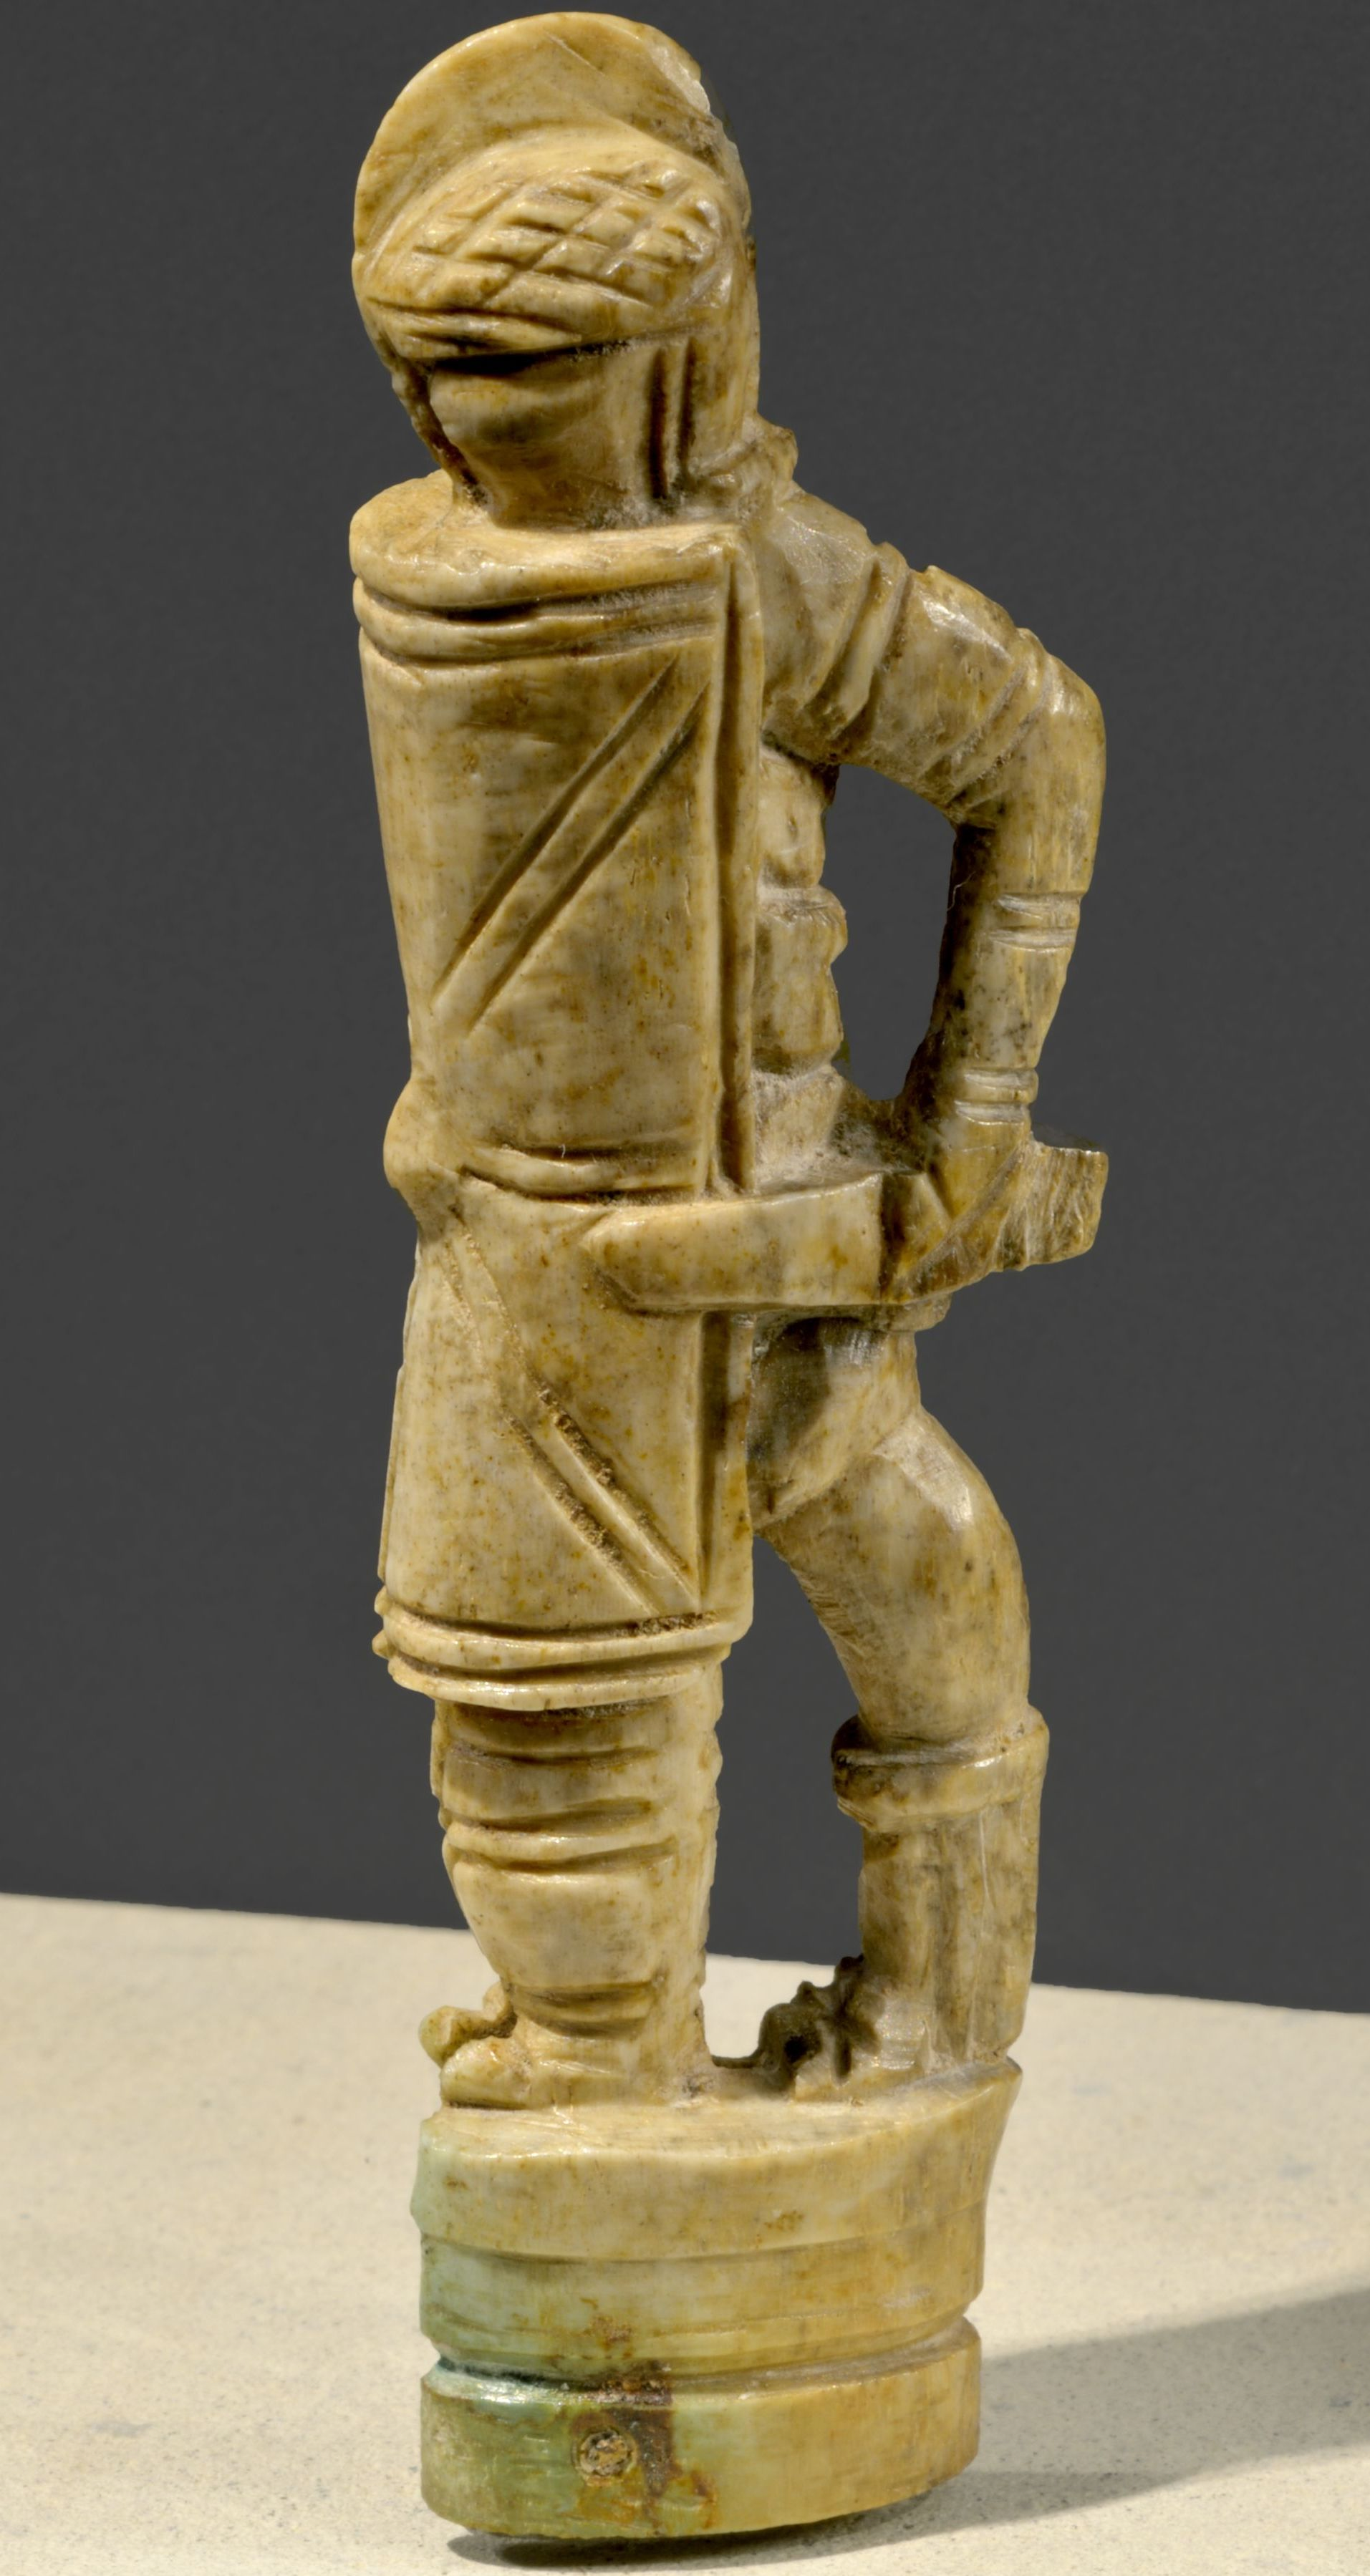 Ivory knife handle shaped as a gladiator